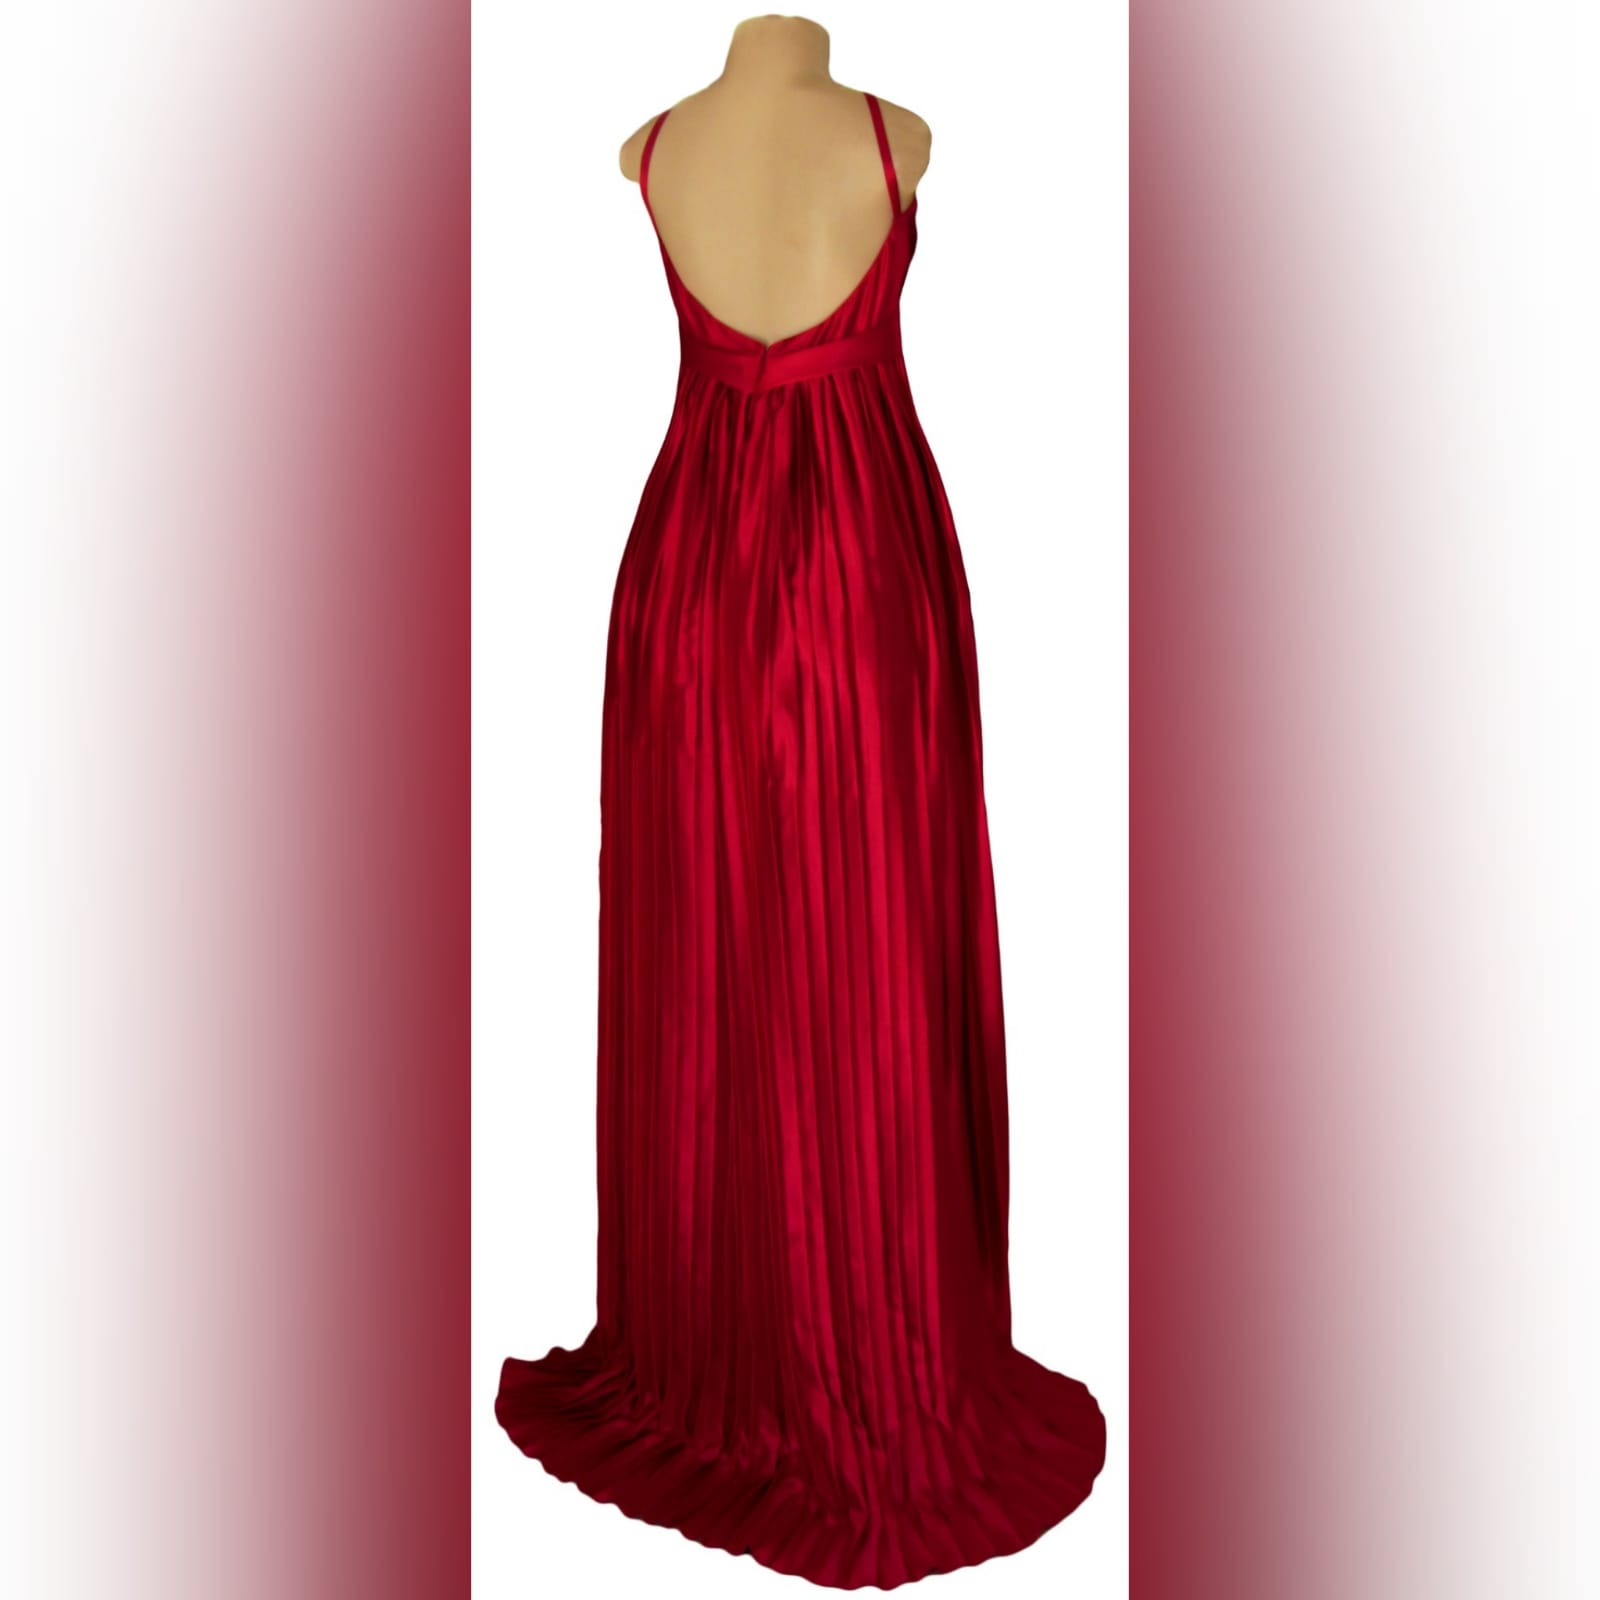 Red pleated satin long evening dress 4 red pleated satin long evening dress with a plunging neckline that closes with a lace-up. Rounded open back. Flowy pleated bottom with a small train.